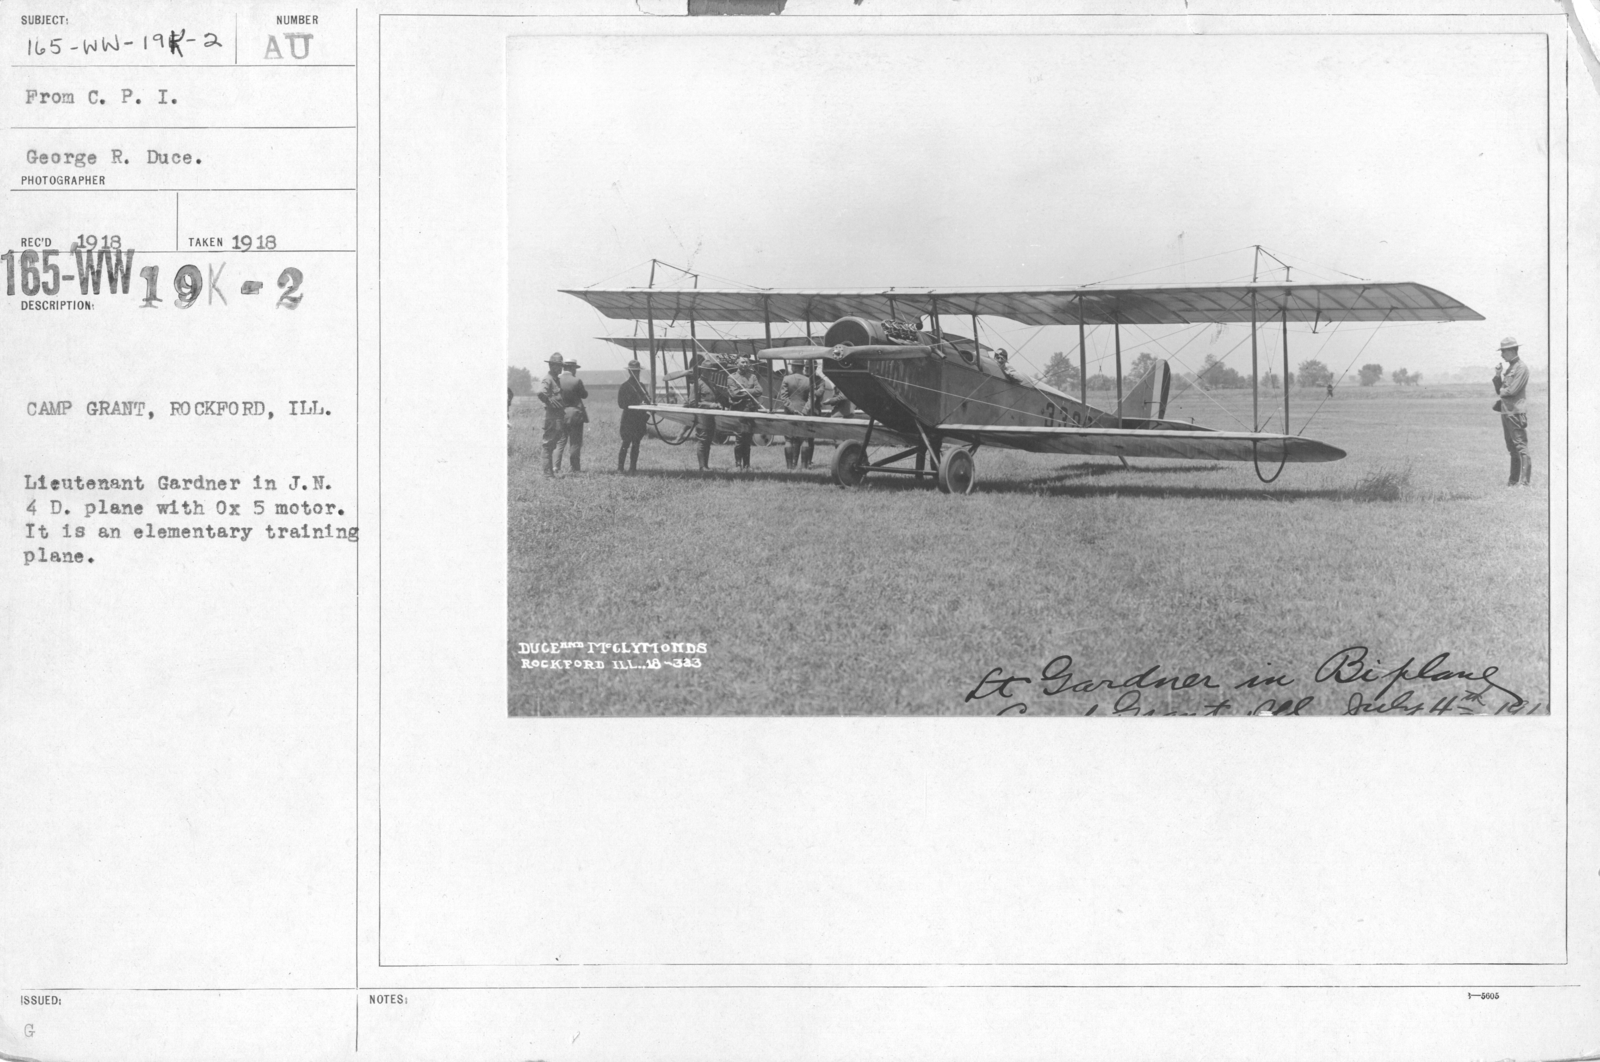 Airplanes - Types - Camp Grant, Rockford, Ill. Lieutenant Gardner in J.N. 4 D. plane with Ox 5 motor. It is an elementary training plane. From C.P.I